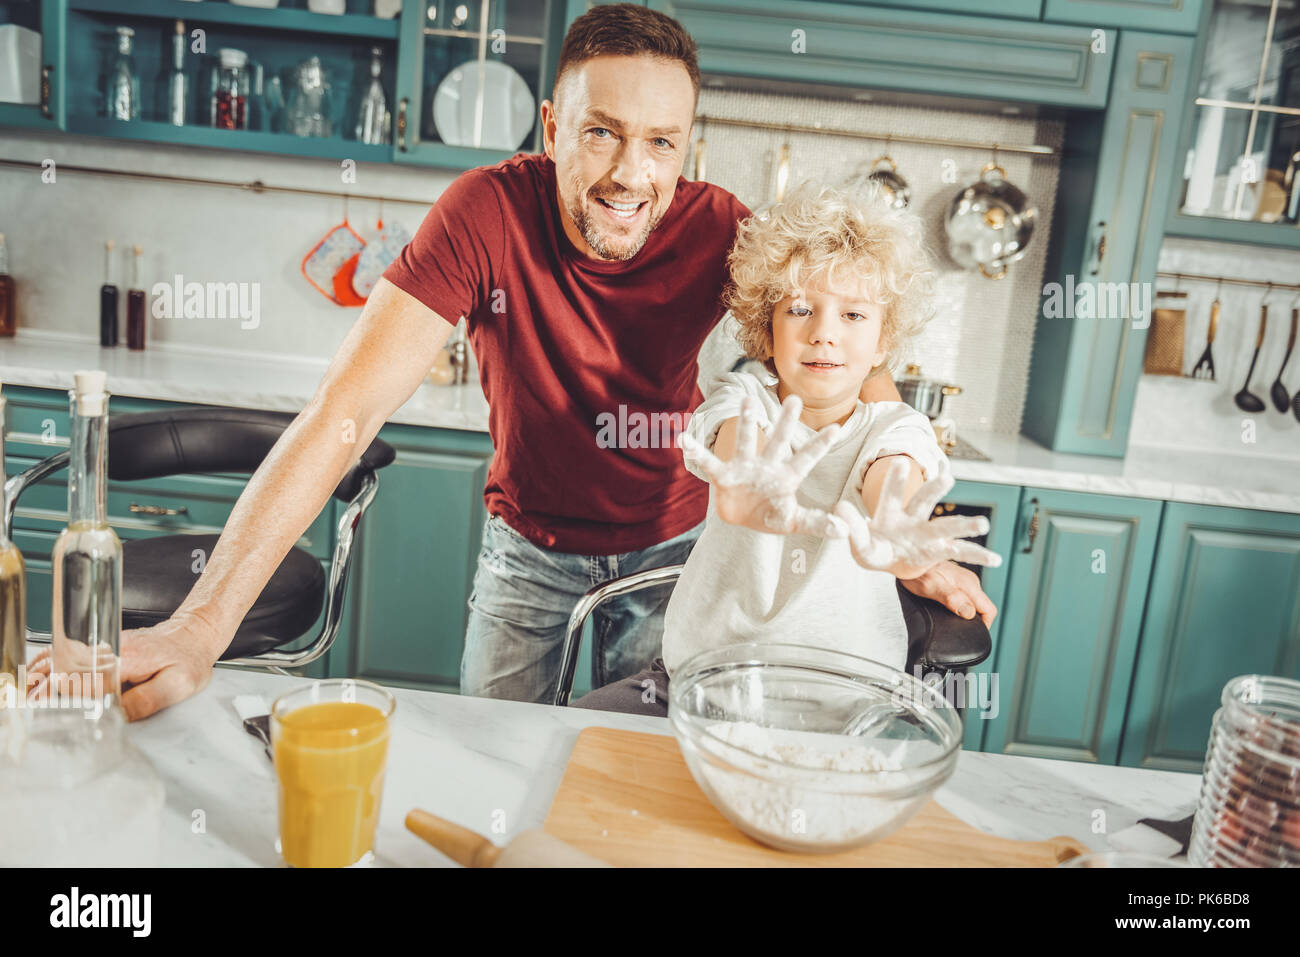 Curly blonde-haired boy showing his little hands in dough - Stock Image